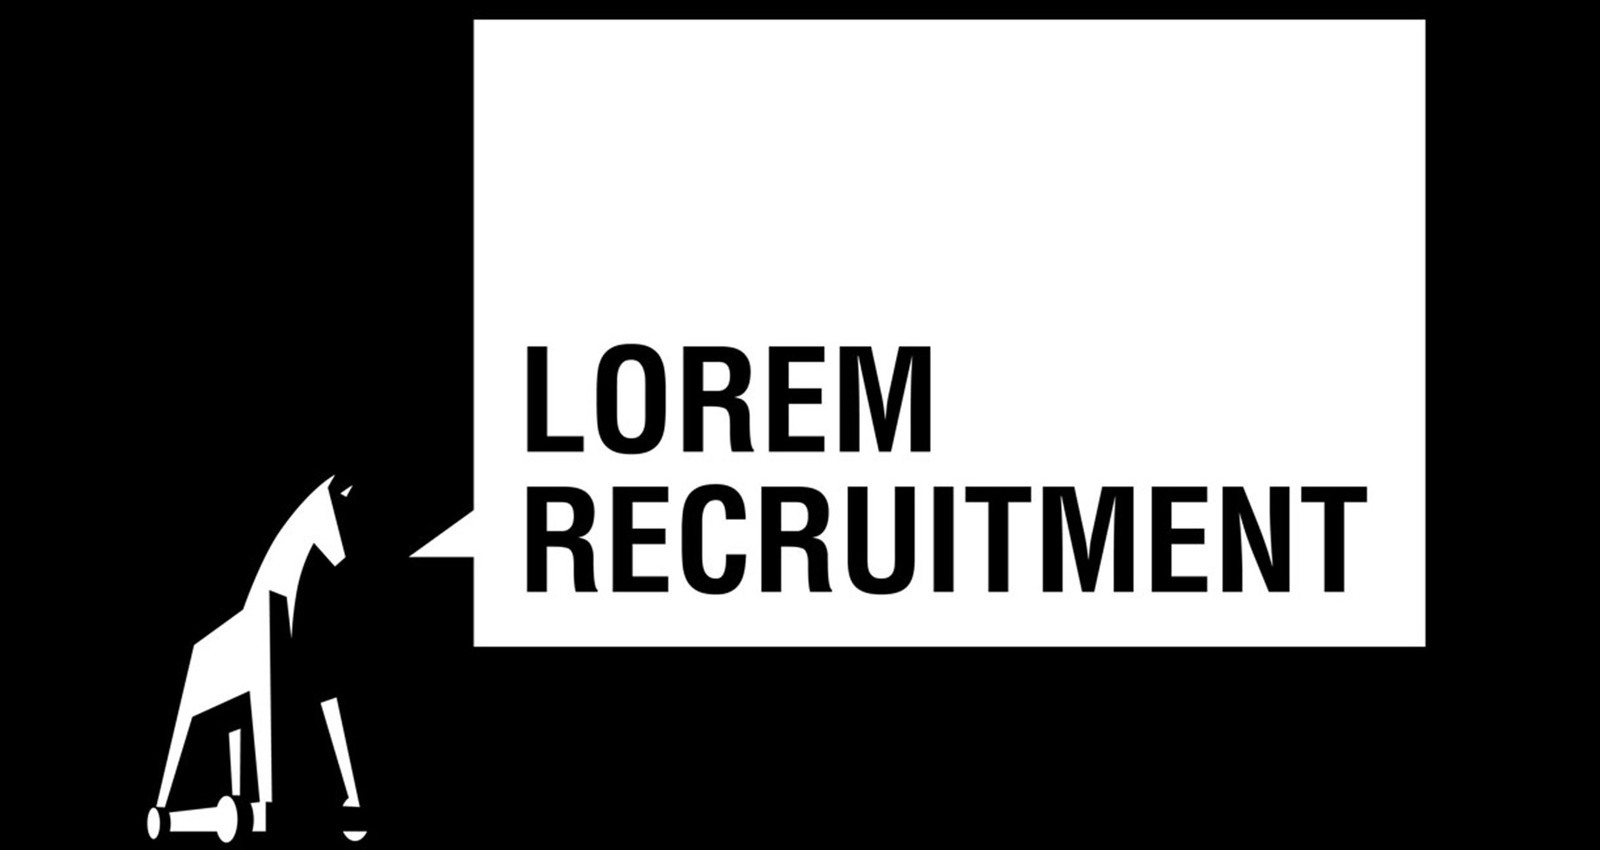 Lorem Recruitment